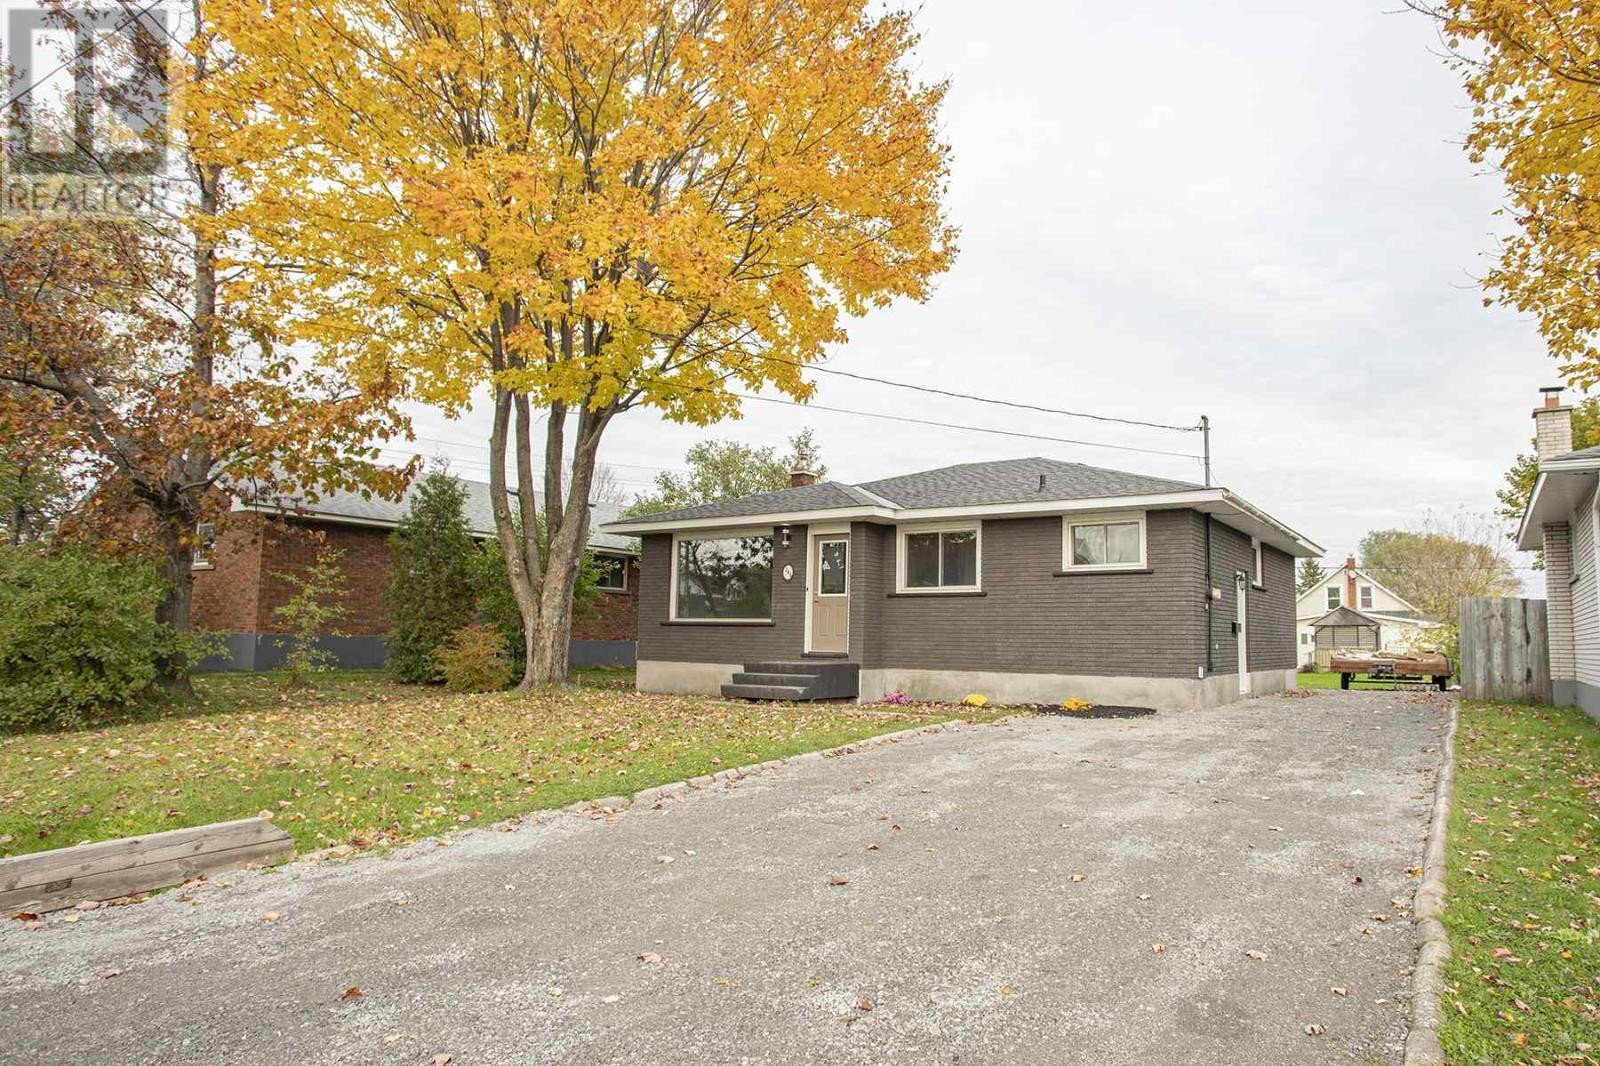 House for sale at 286 Dryden Ave Sault Ste. Marie Ontario - MLS: SM130044